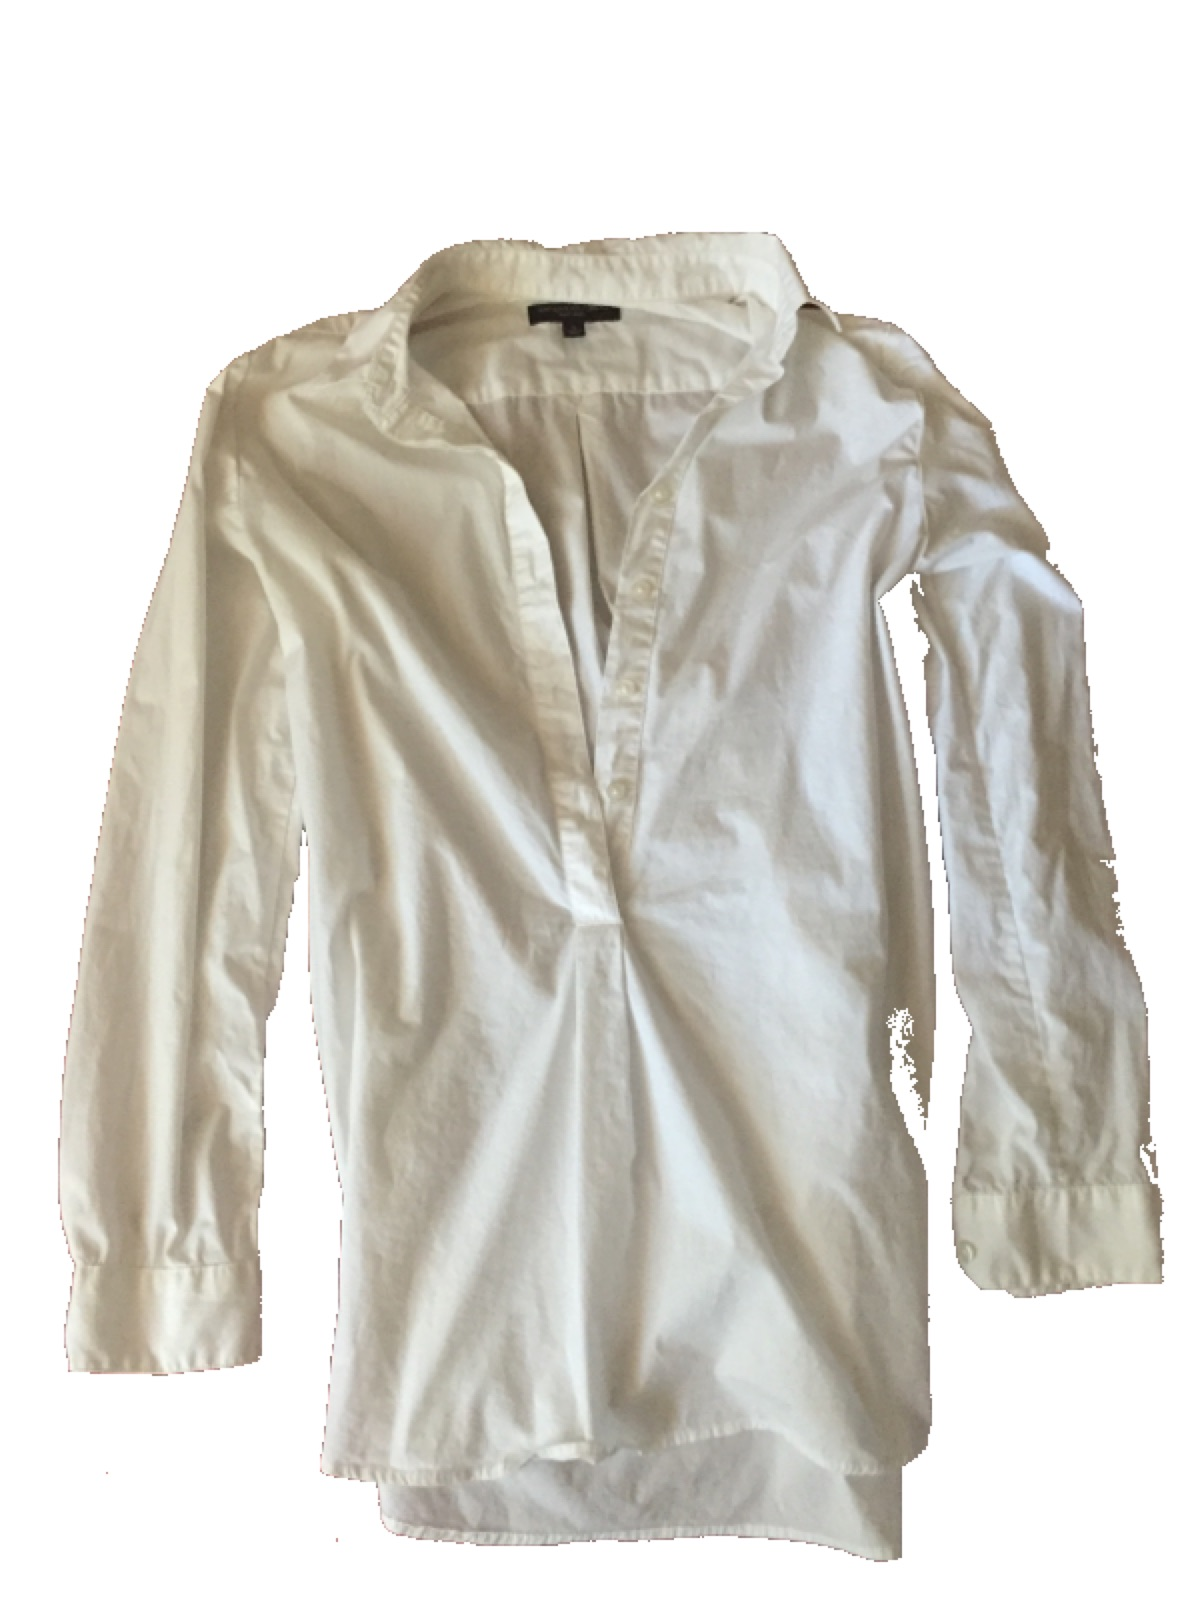 Secondhand Blouse from ThredUp